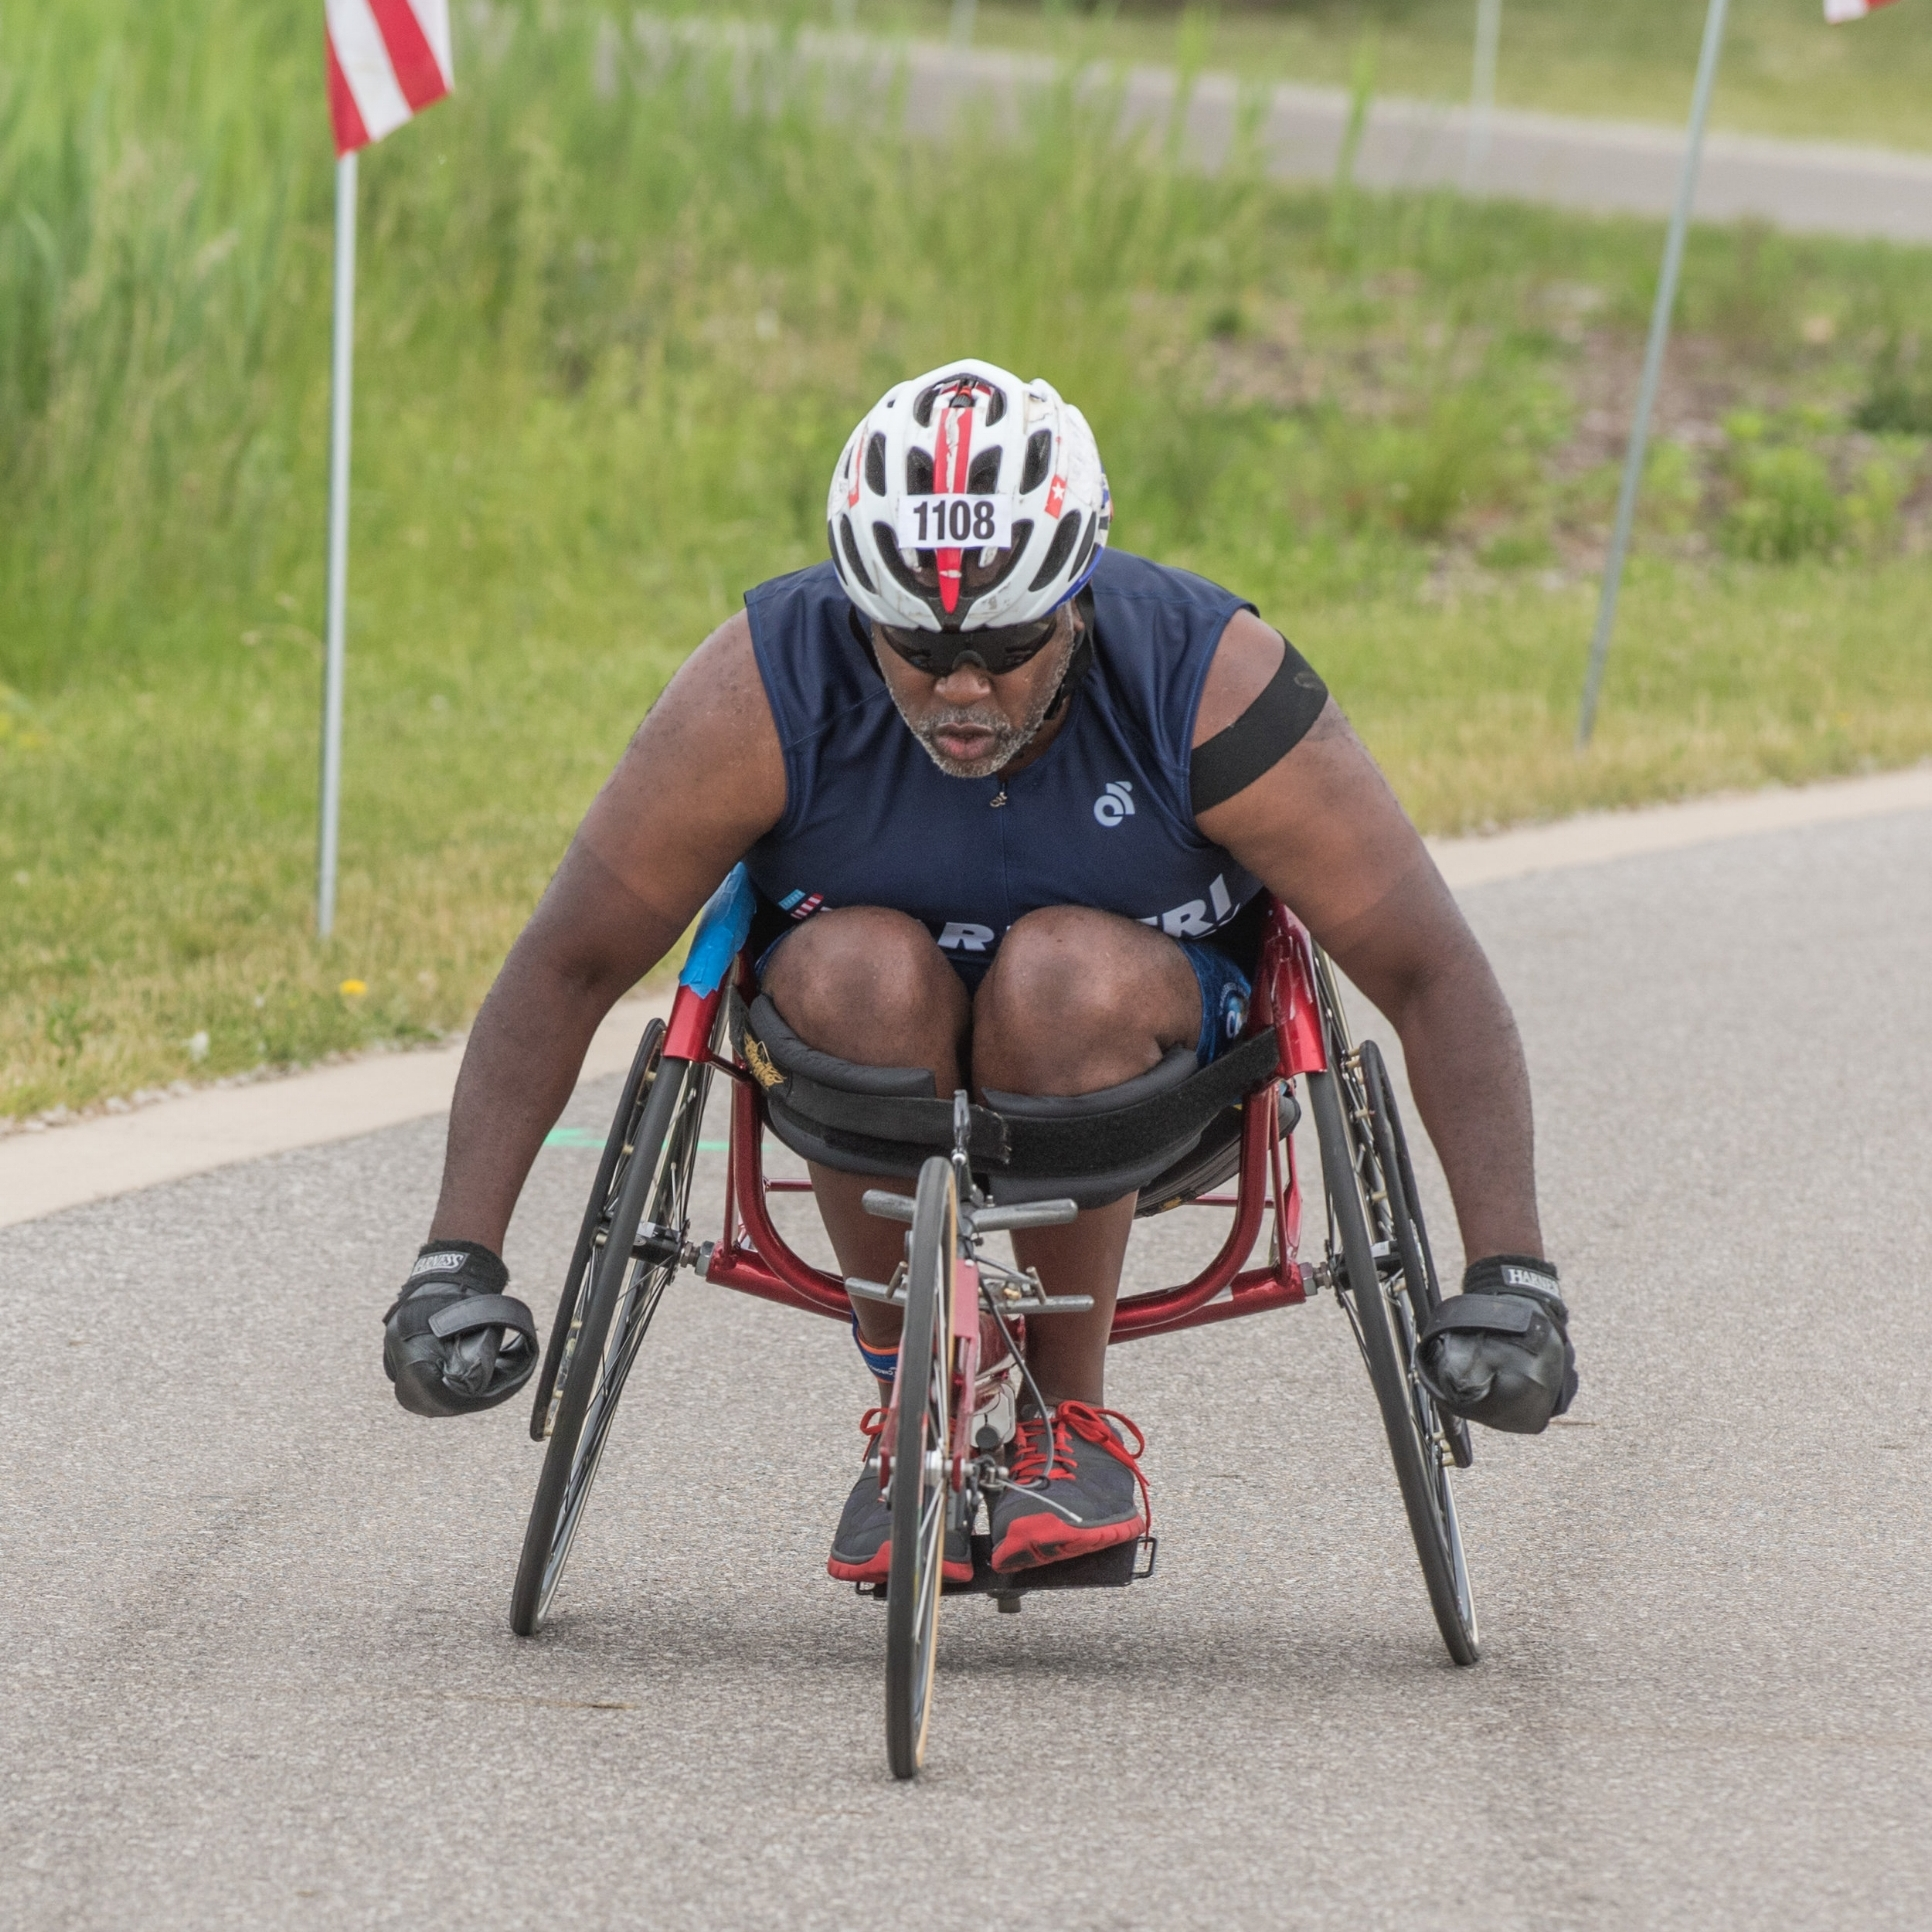 Athlete in racing chair.